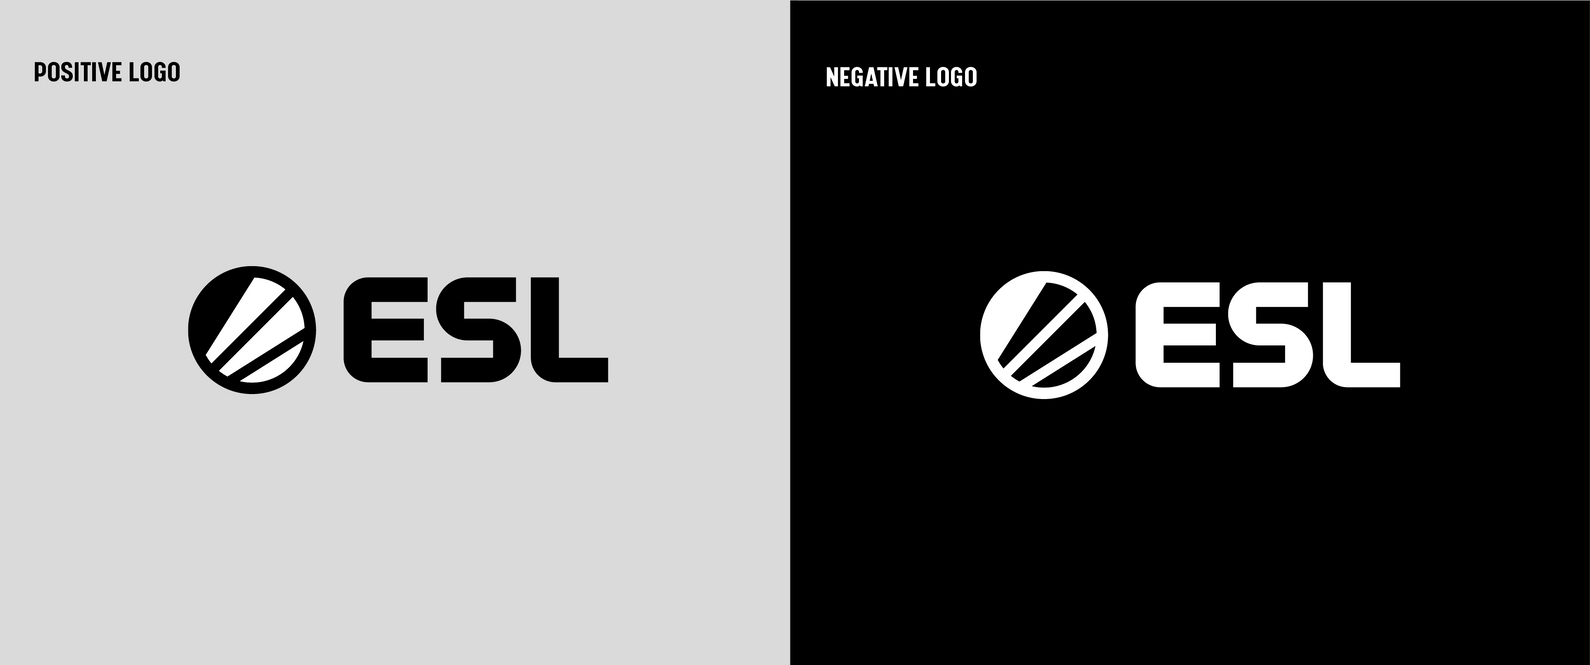 Nowe logo ESL - 2019 rebranding alternatywy